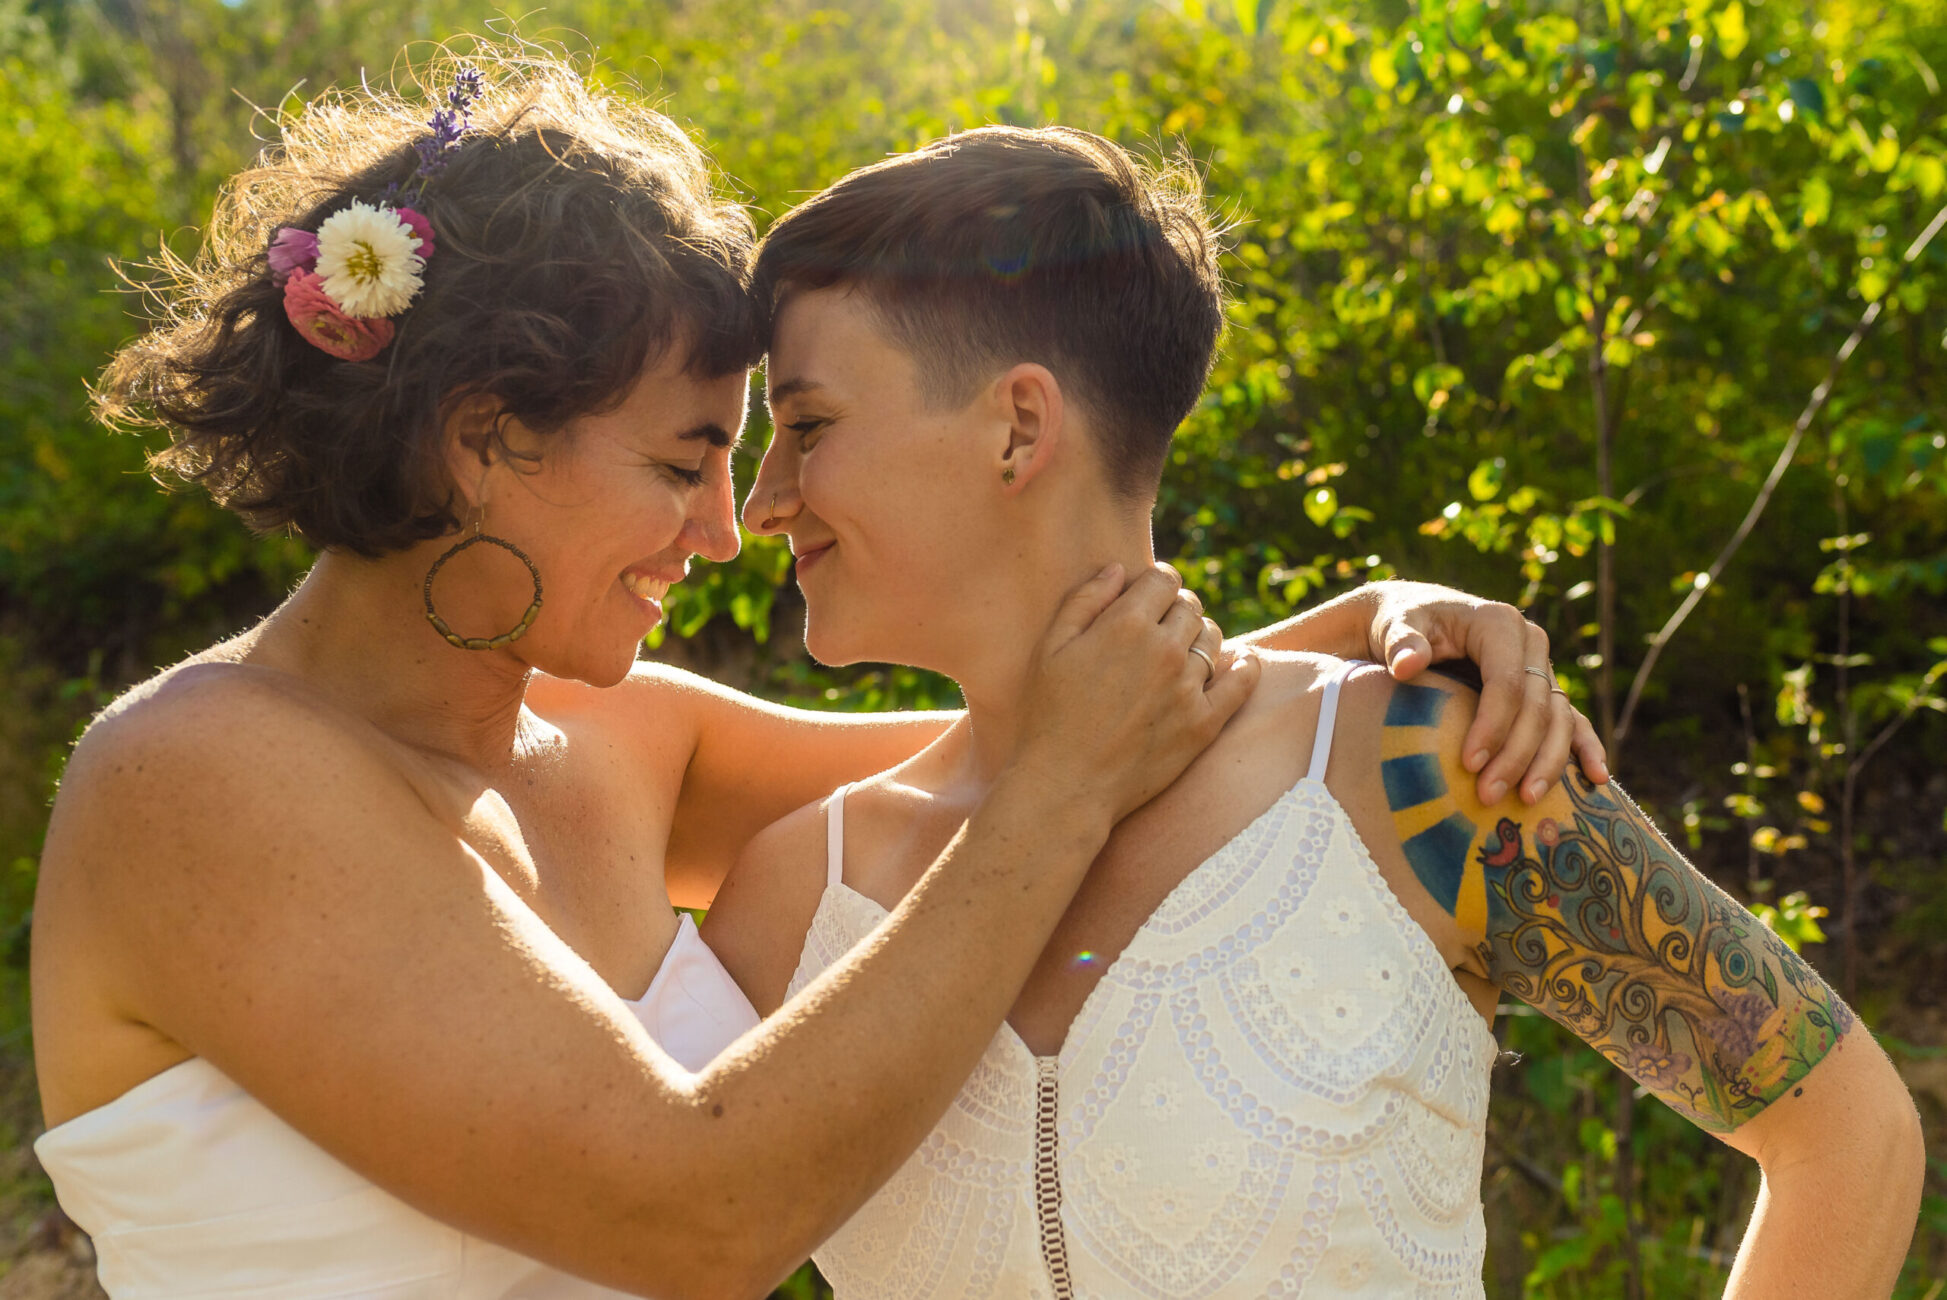 Two brides embrace in the setting sun by kootenay wedding photographer bobbi barbarich